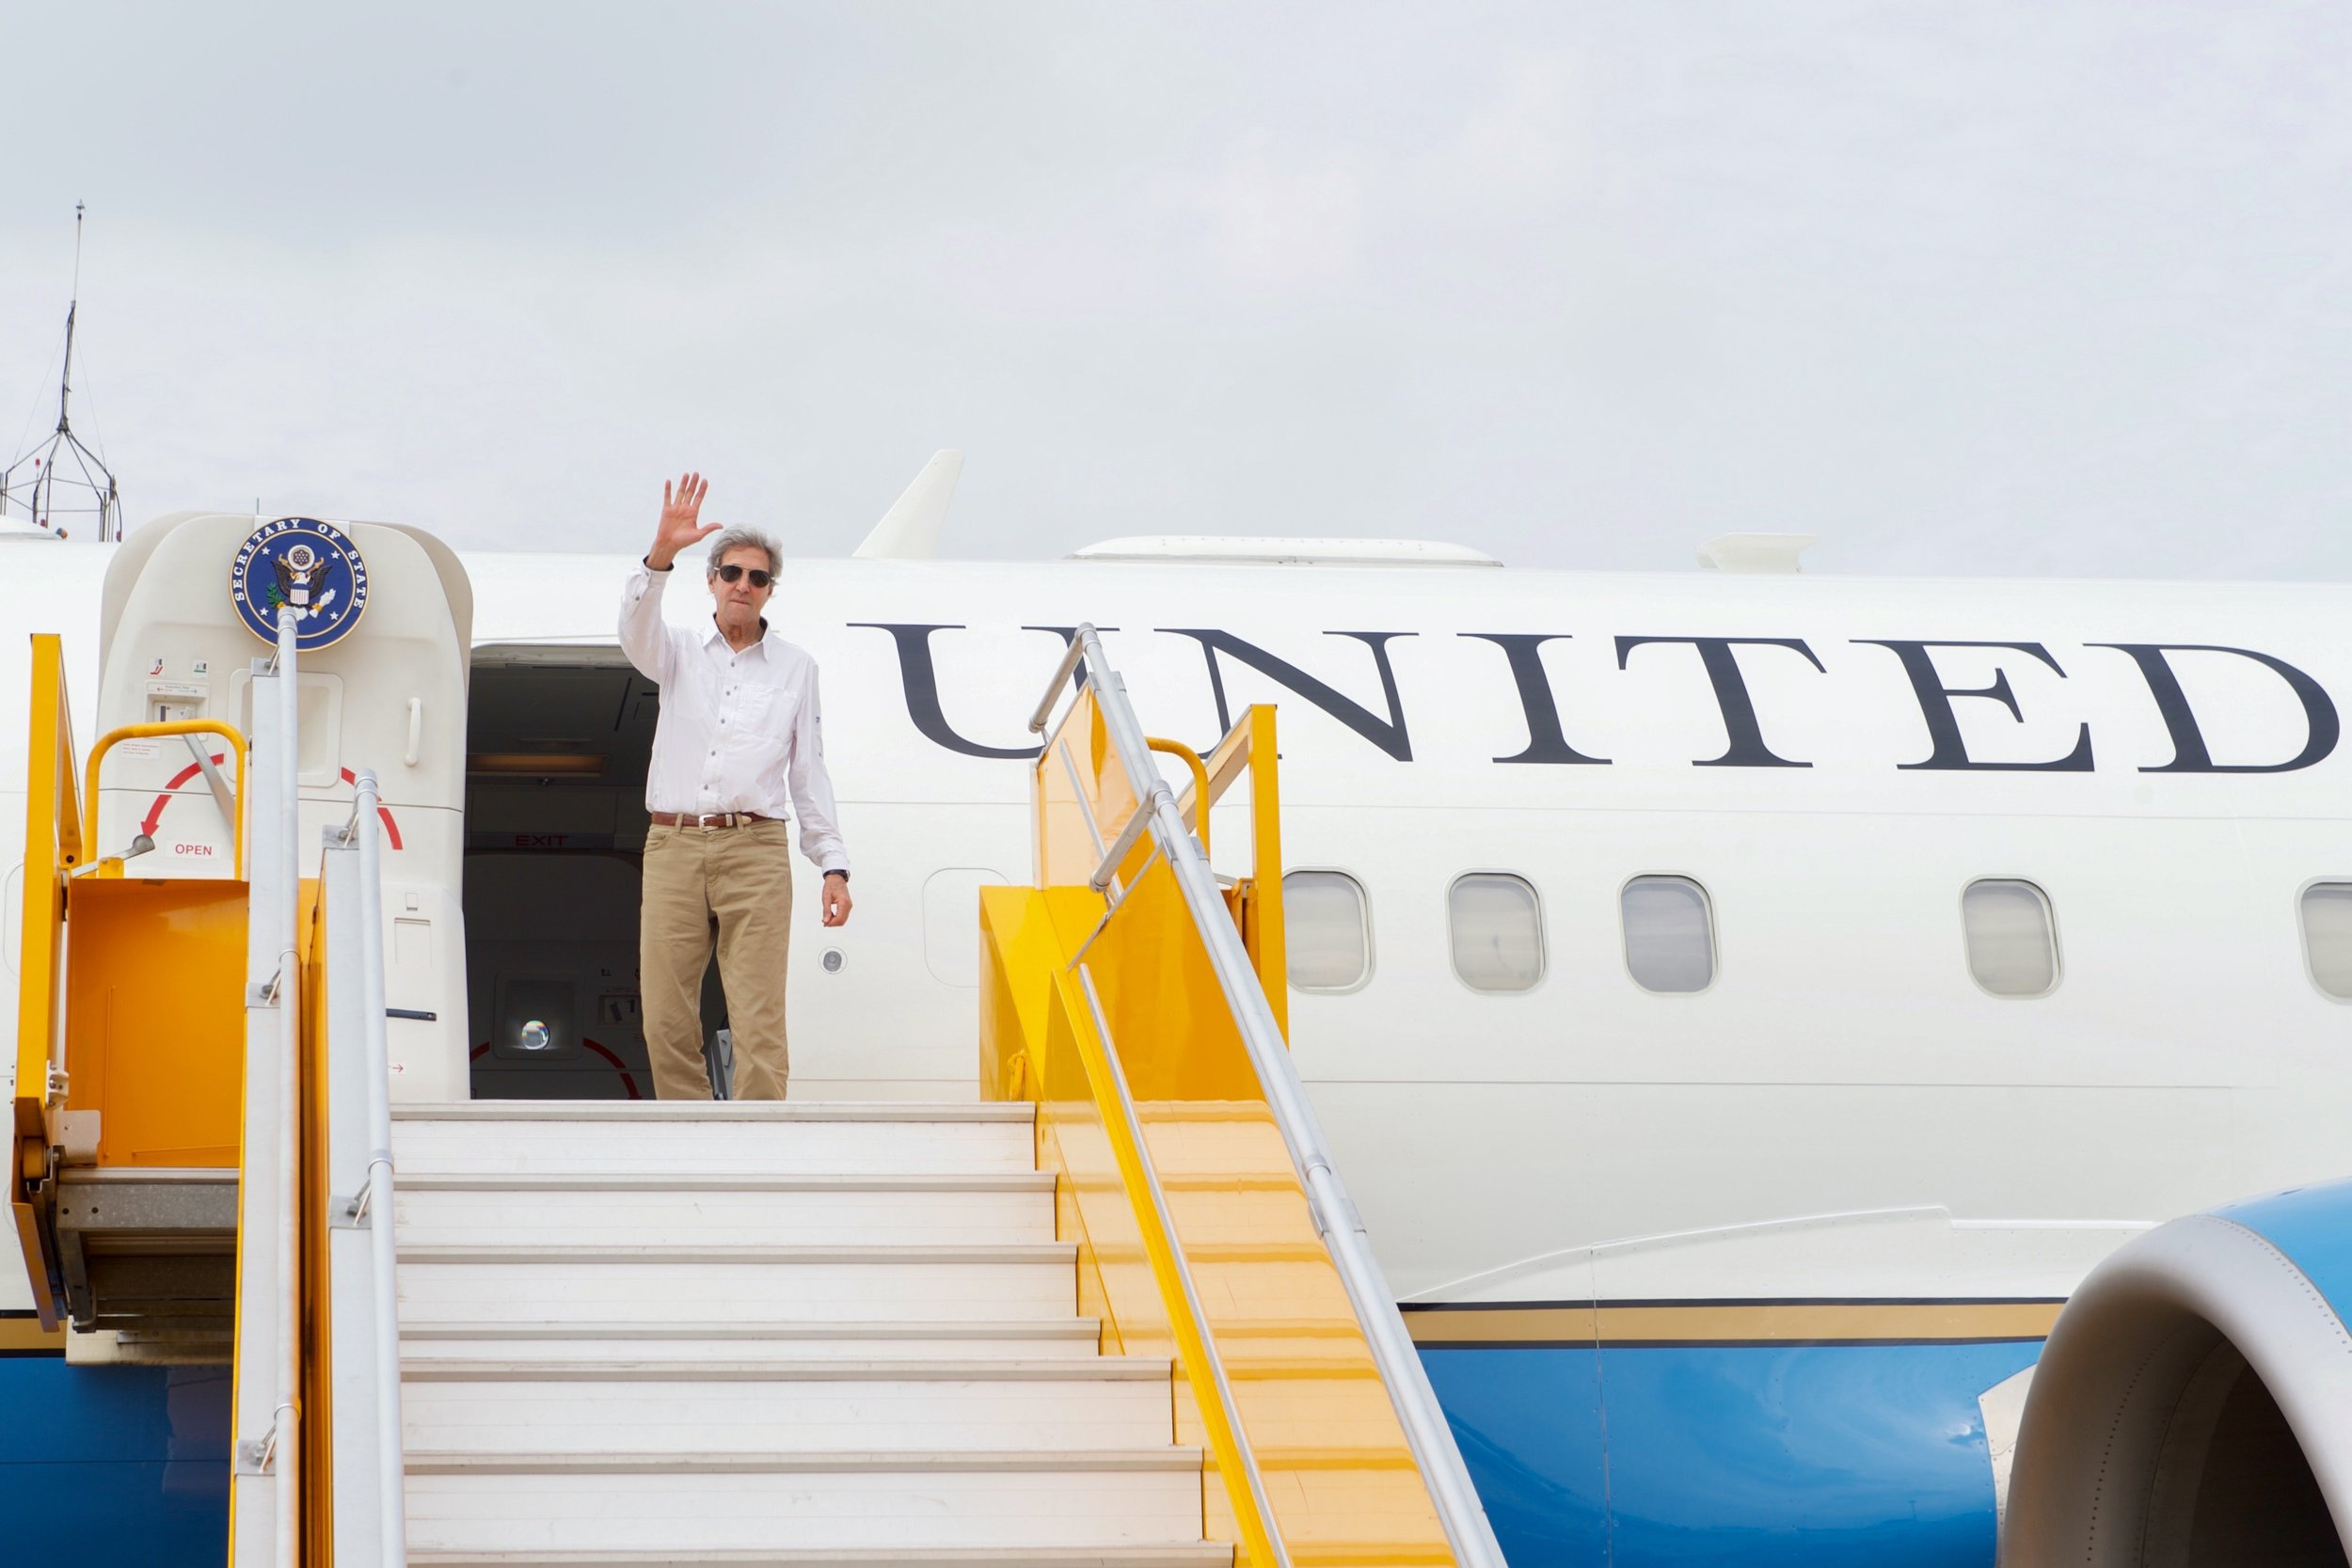 John Kerry waves goodbye after his fourth and final trip to Vietnam as Secretary of State.